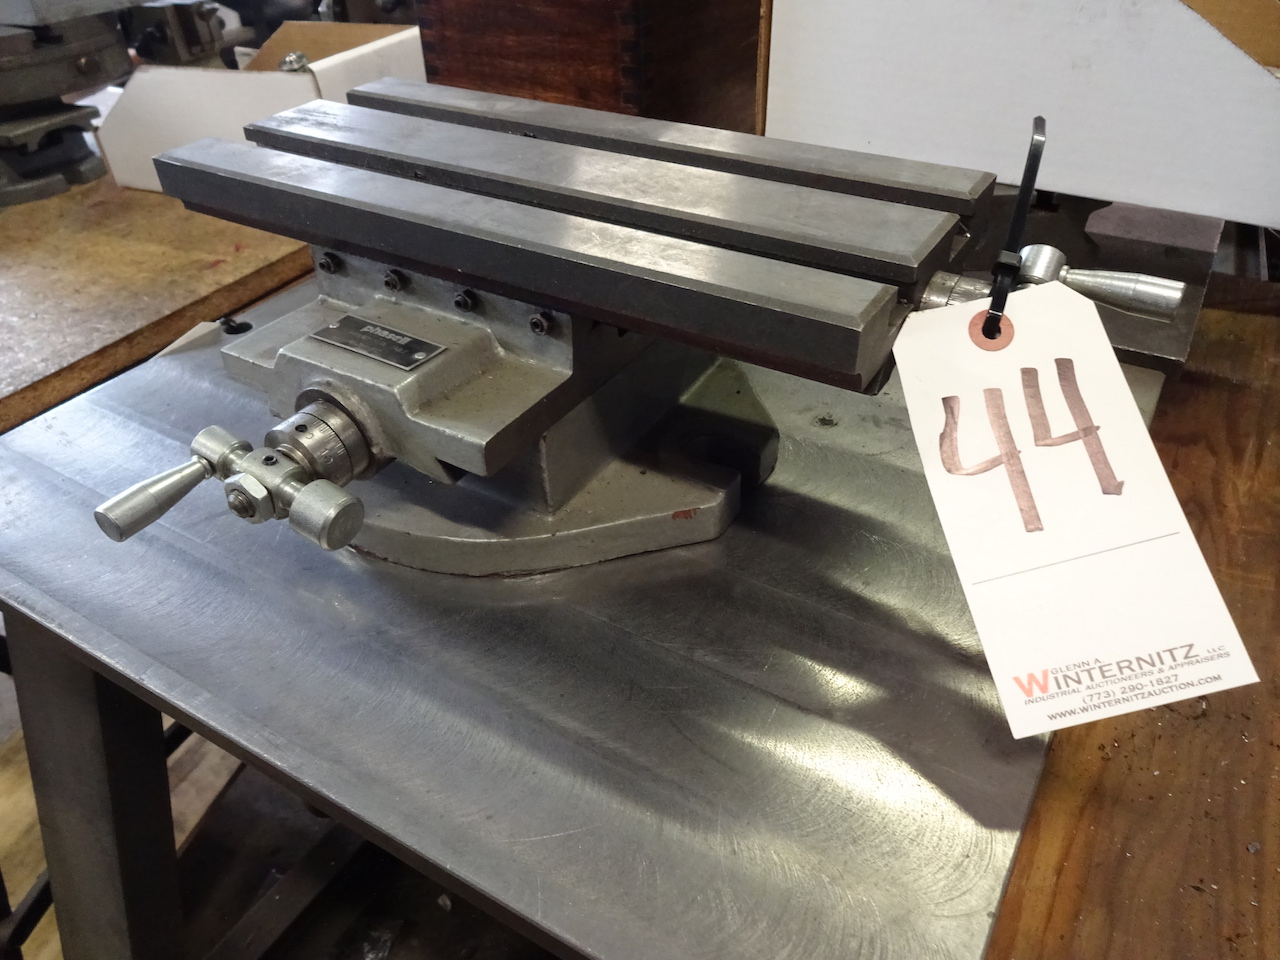 Lot 44 - PHASE II NO. 260-512 12-1/4 IN X 5-3/4 IN COMPOUND SLIDE TABLE